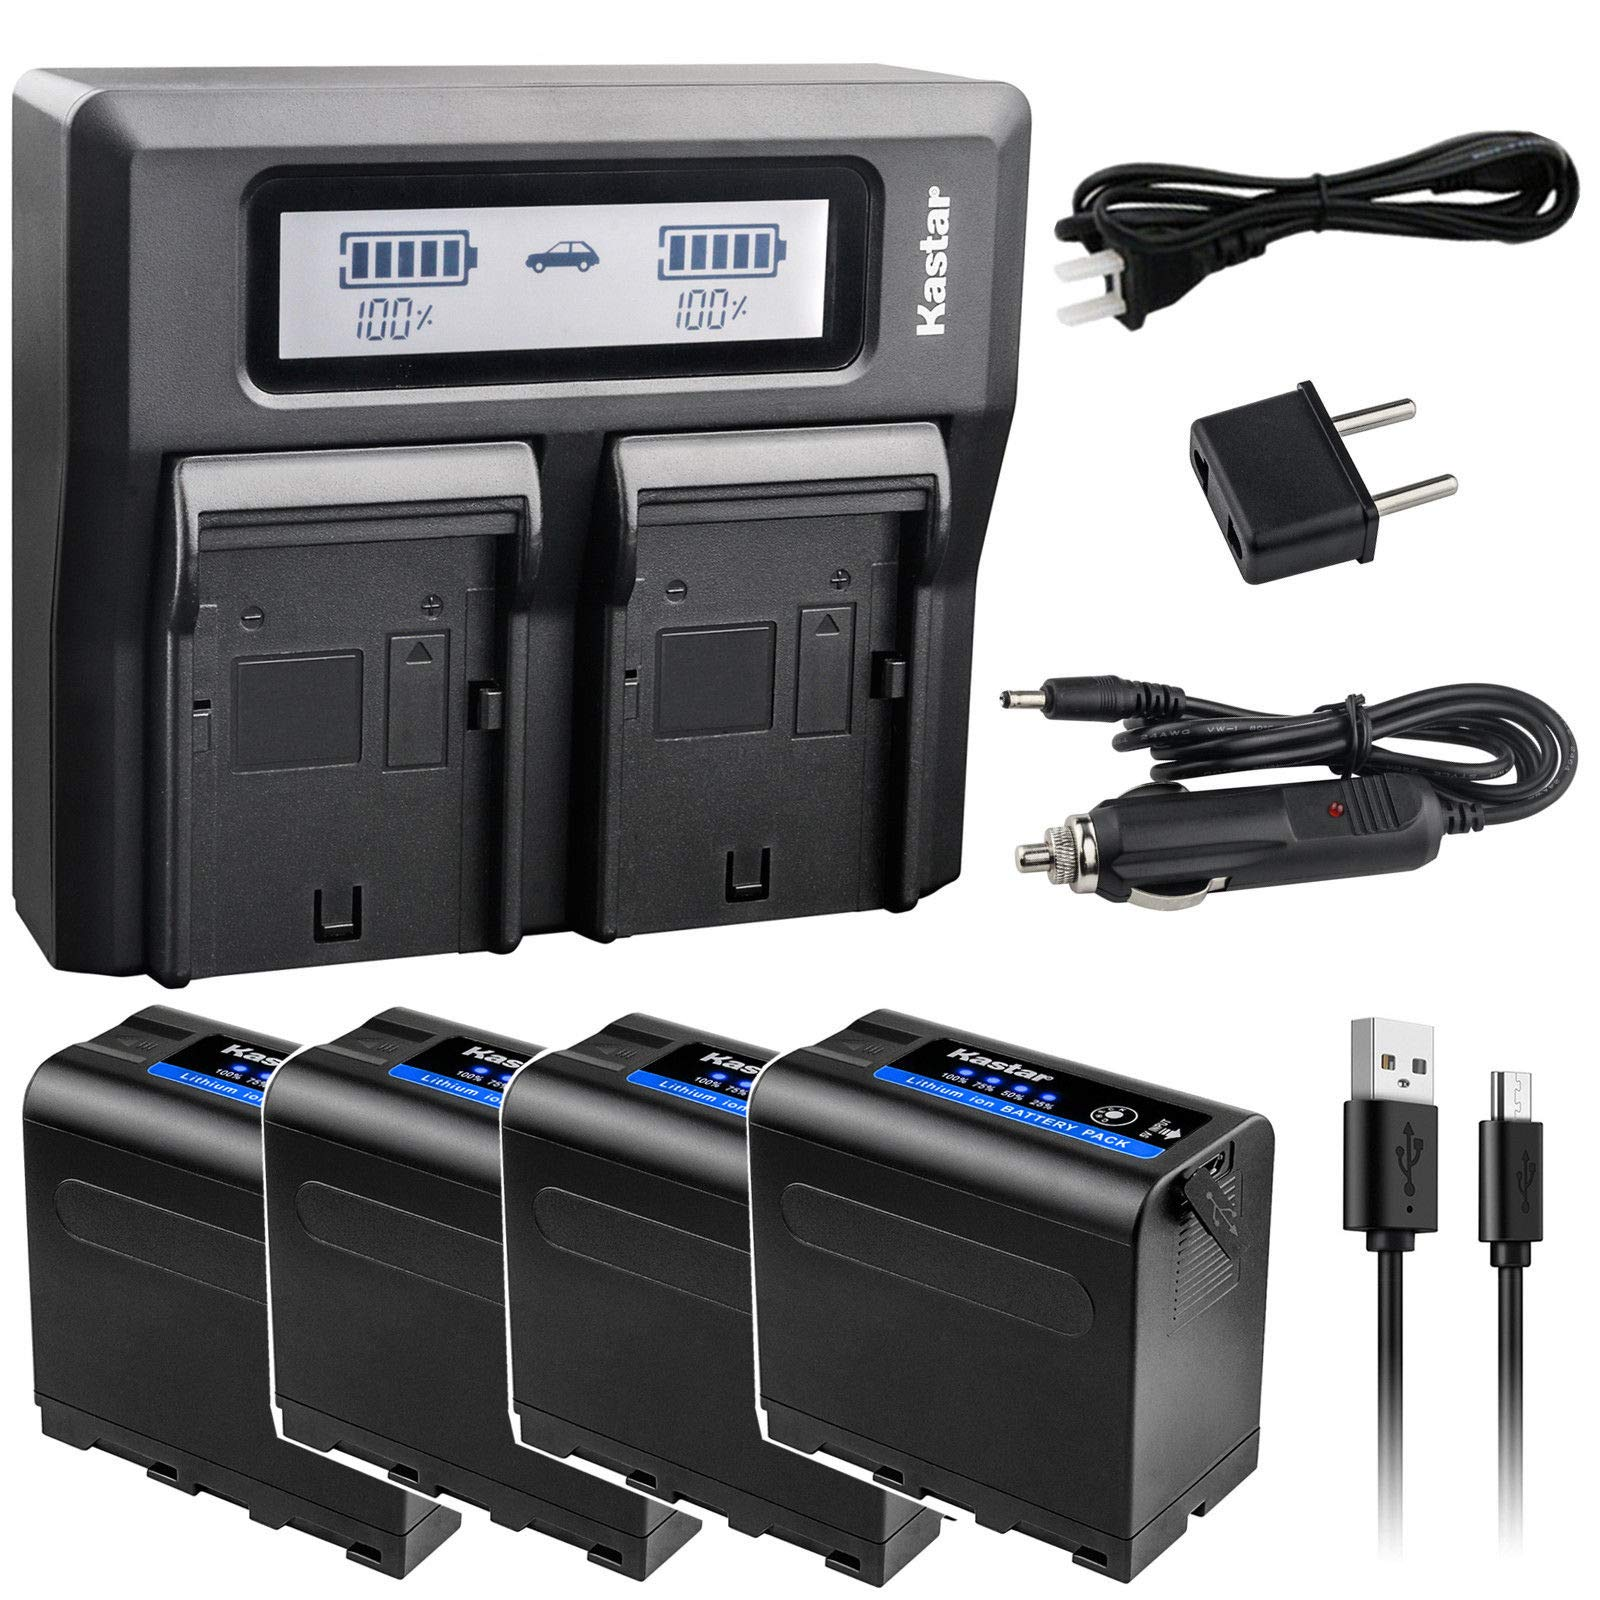 Kastar 4 Pack Battery and LCD Dual Fast Charger for Sony NP-F980 Pro NP-F970 MVC-CD1000 MVC-CD400 MVC-CHF81 MVC-CKF81 MVC-FD100 MVC-FD200 MVC-FD5 MVC-FD51 MVC-FD7 MVC-FD71 MVC-FD73 MVC-FD75 MVC-FD81